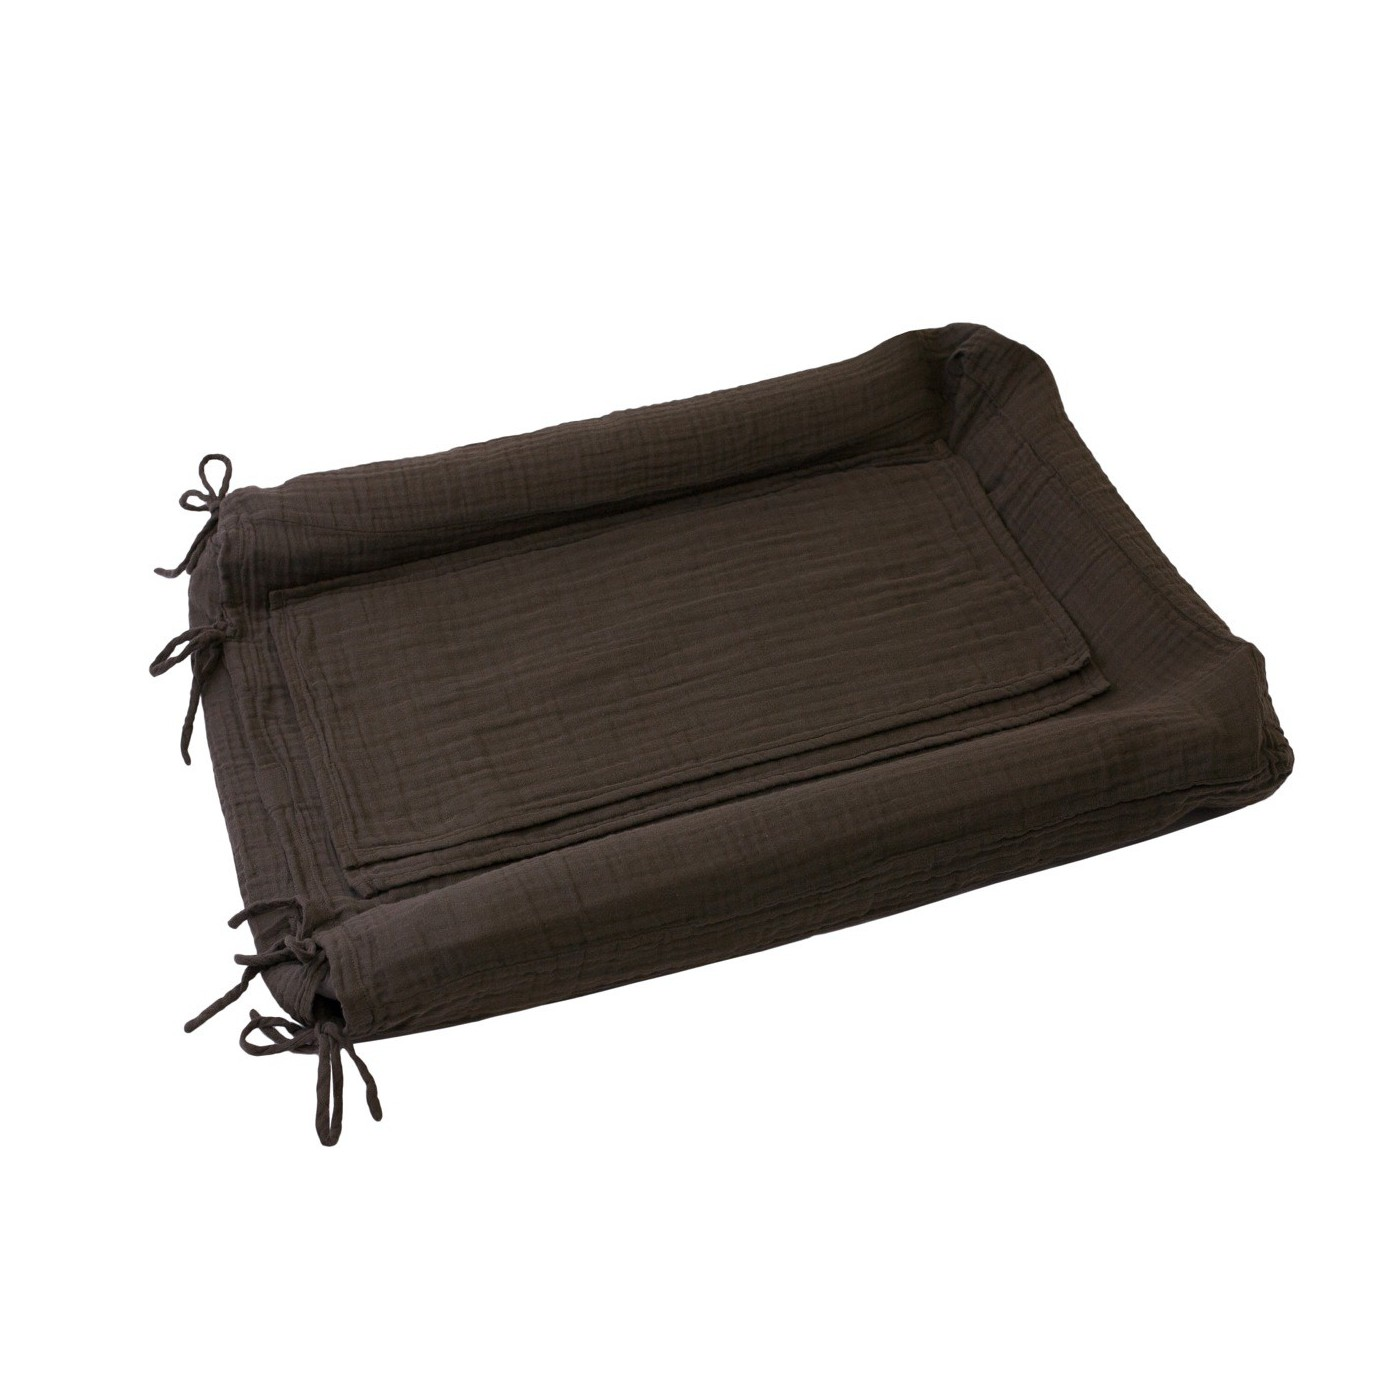 Housse matelas a langer rectangle taupe yadayada for Housse matelas a langer